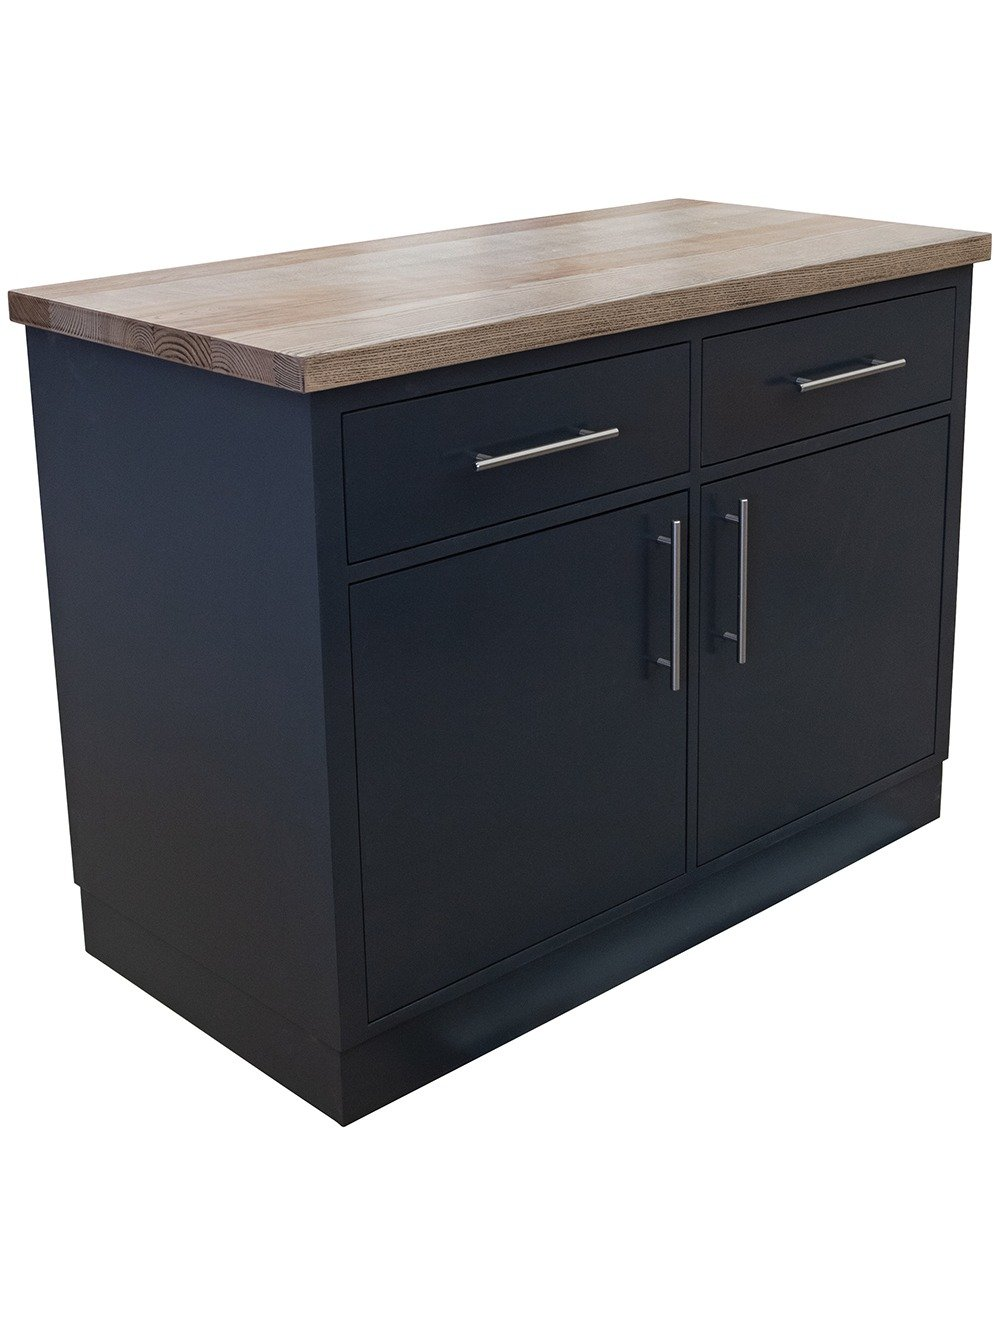 Dumbwaiter 5 | Custom Furniture UK | Carlick Contract Furniture